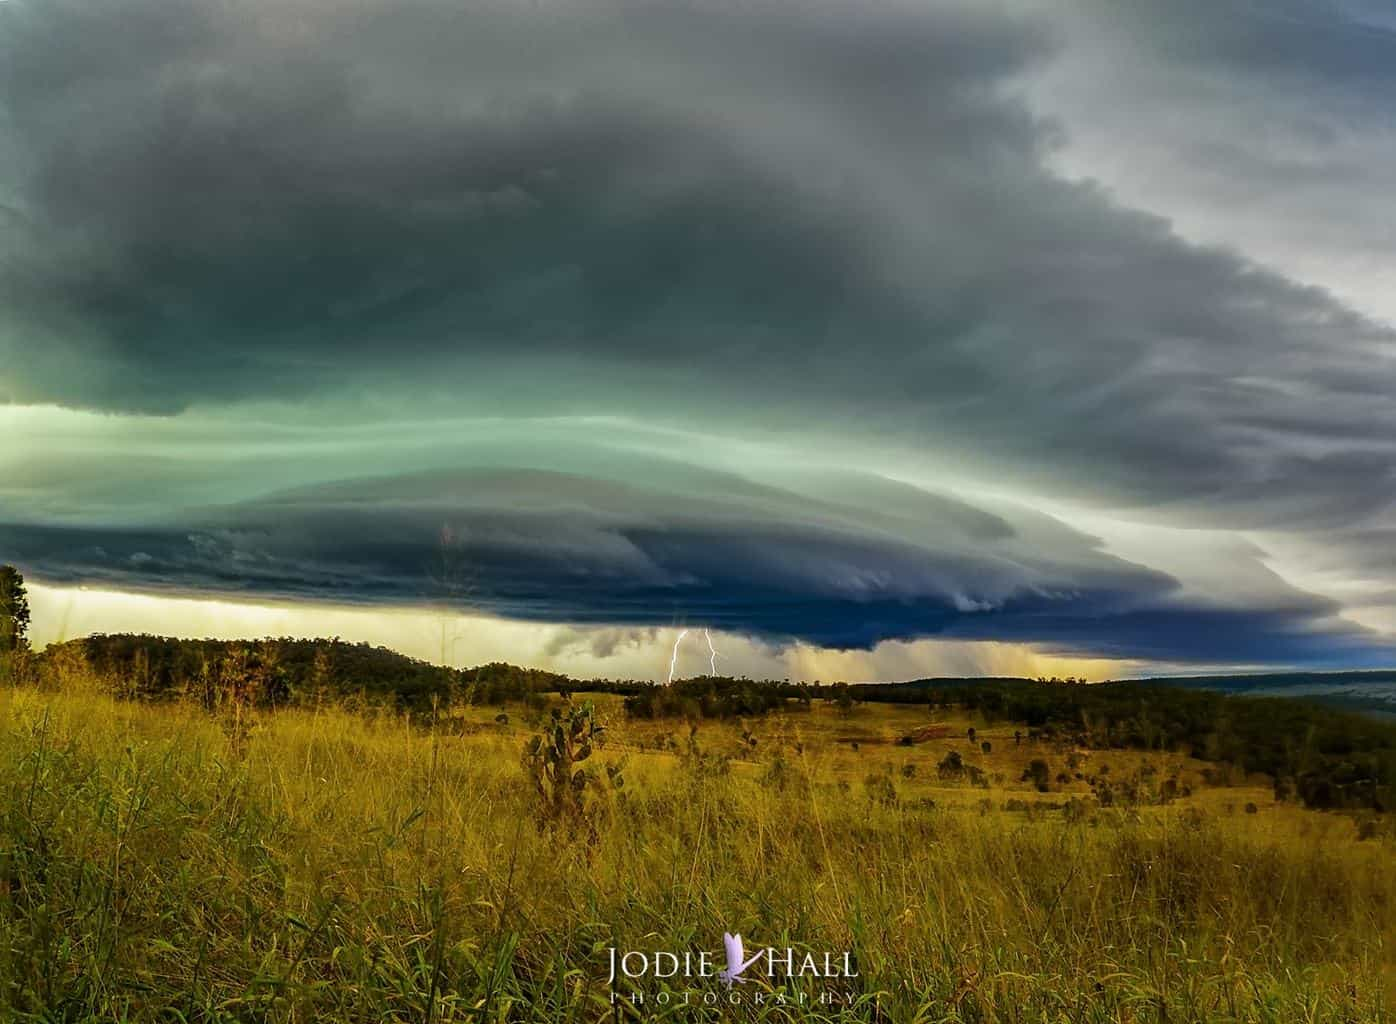 A severe warned cell near Munduberra, Australia. You could hear the hail smashing around in the clouds.